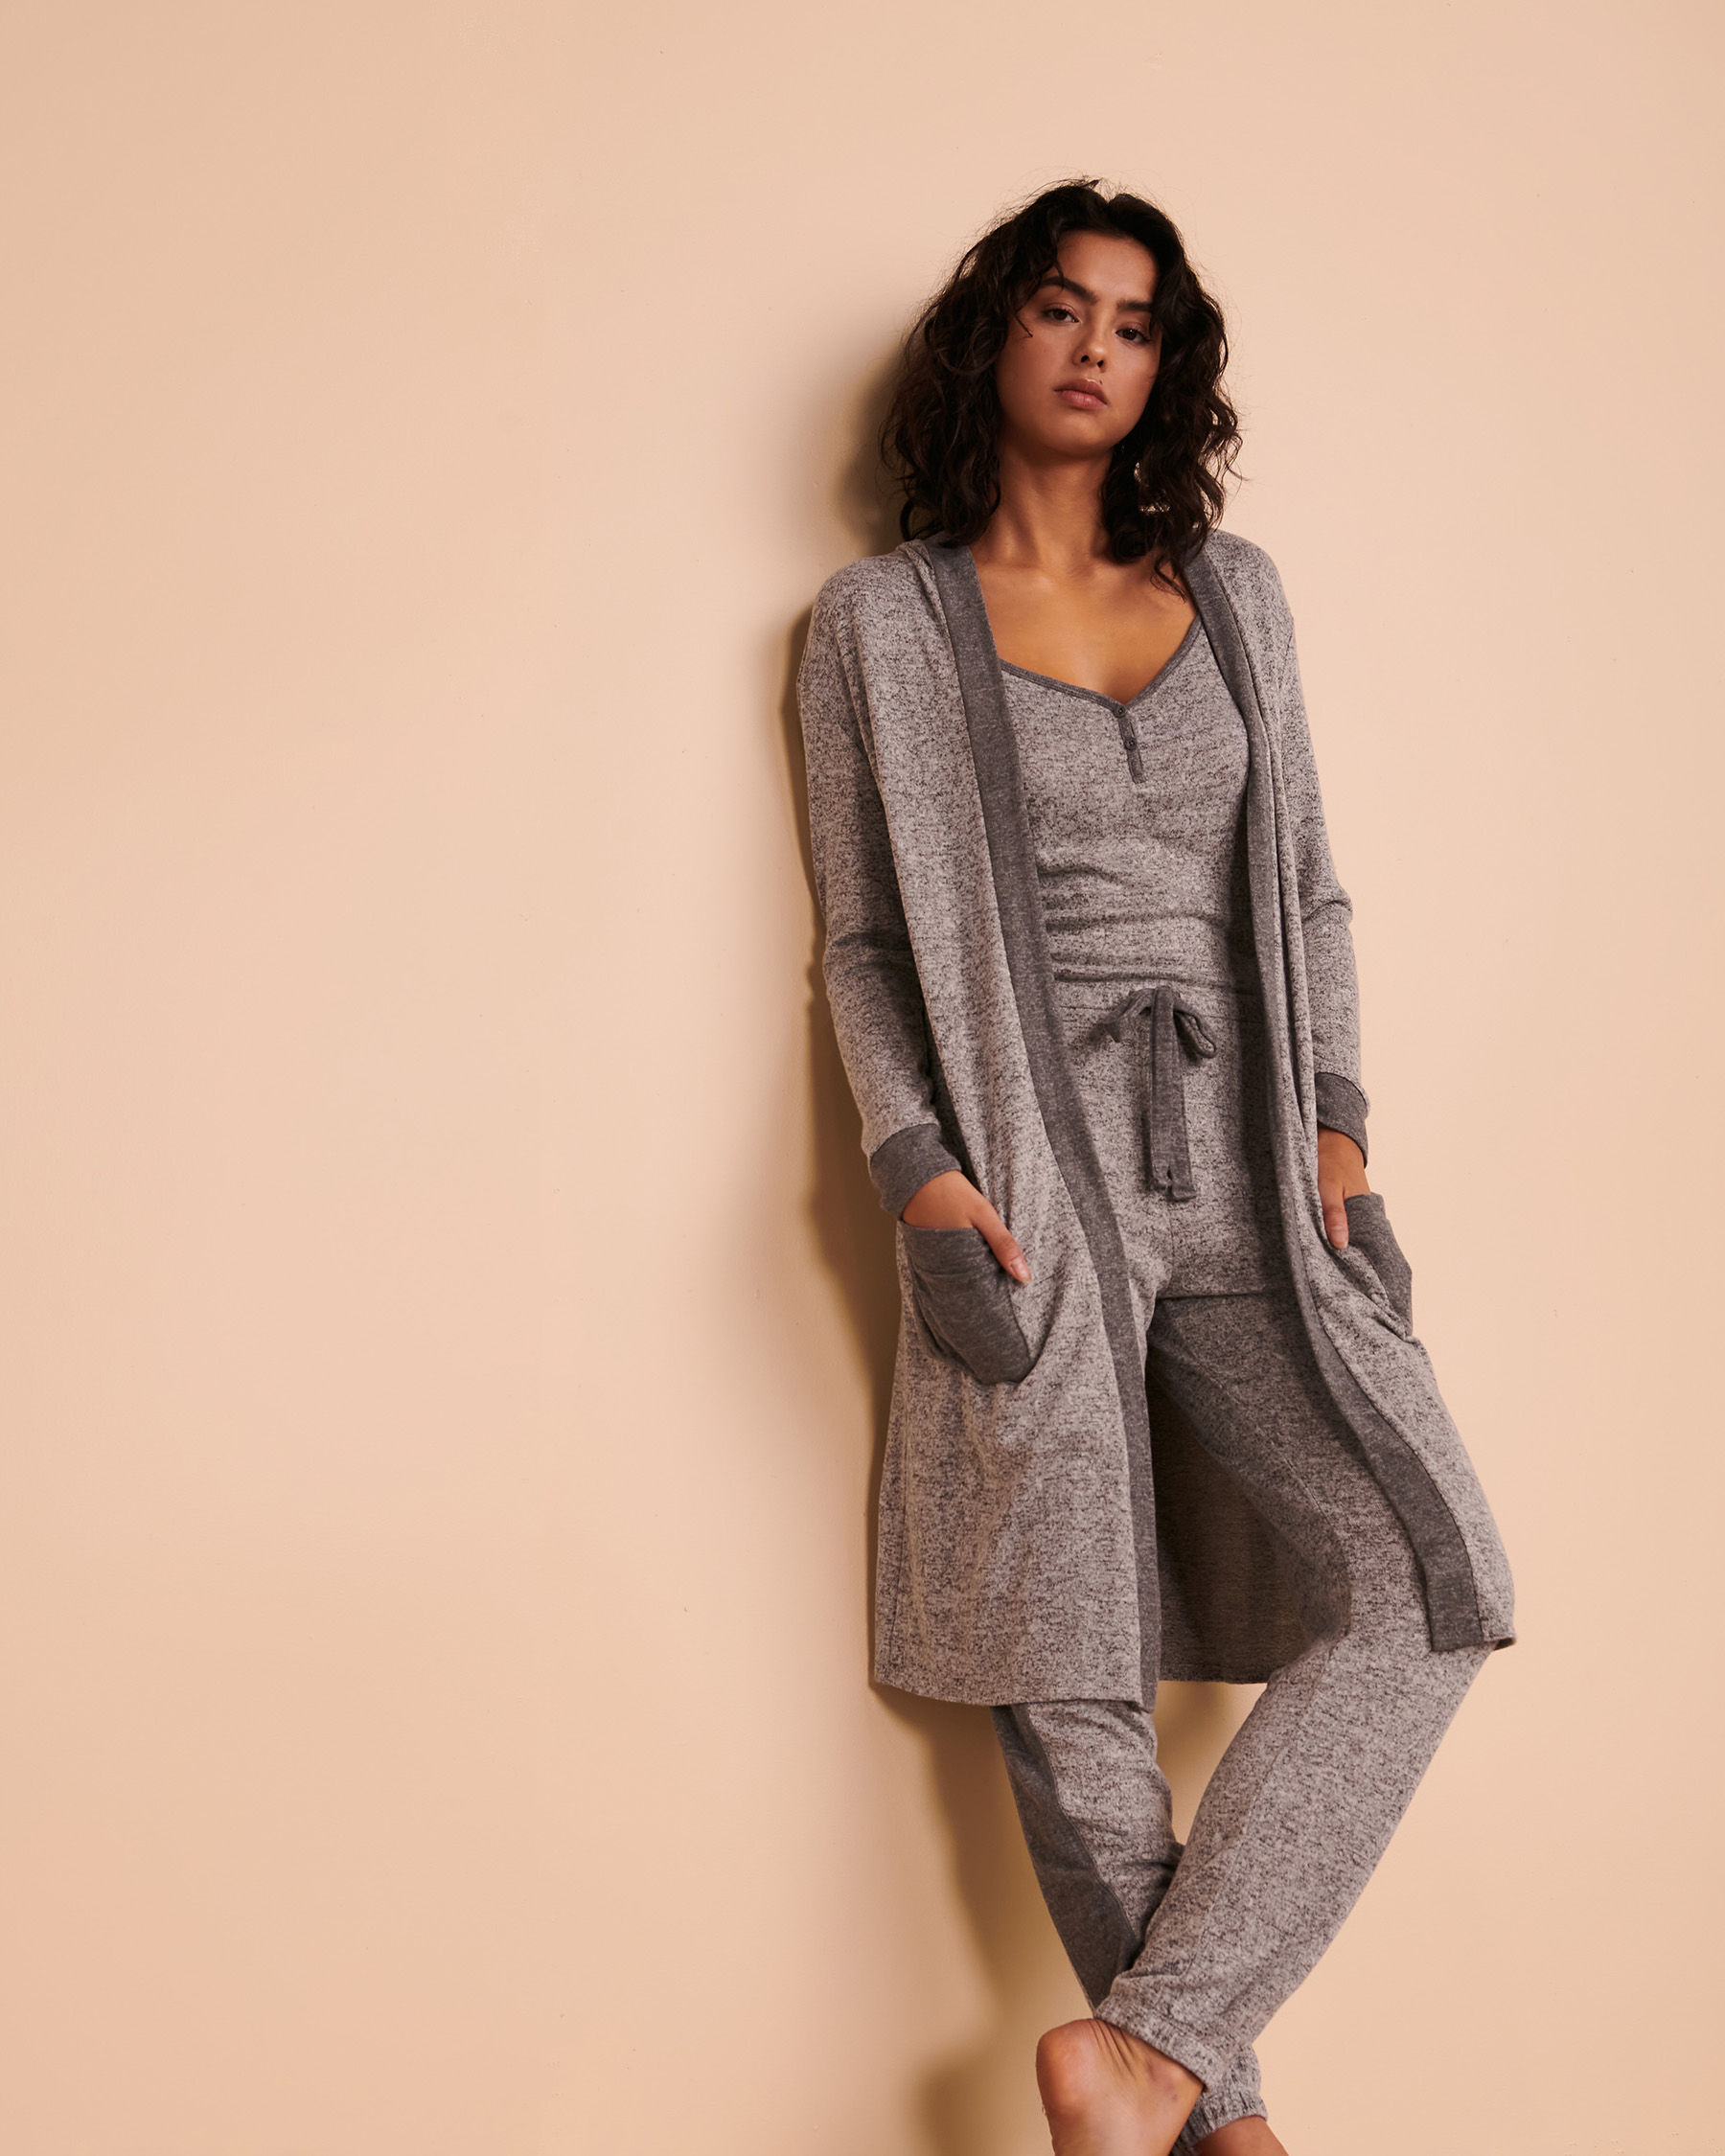 TURQUOISE COUTURE Long Sleeve Cardigan Soft grey 02400004 - View2